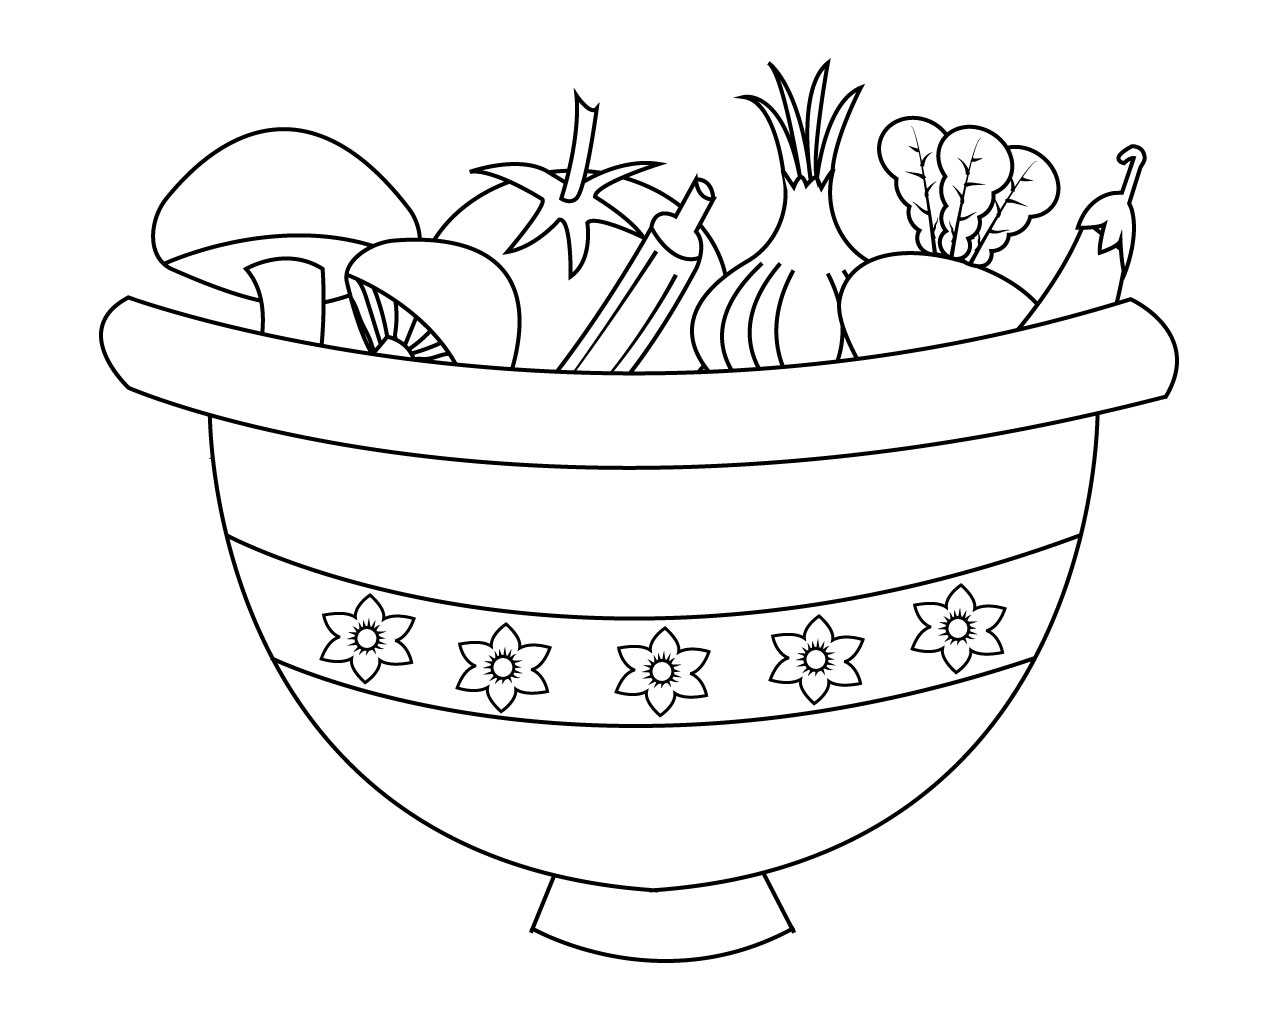 coloring sheets vegetables vegetable coloring pages for childrens printable for free sheets coloring vegetables